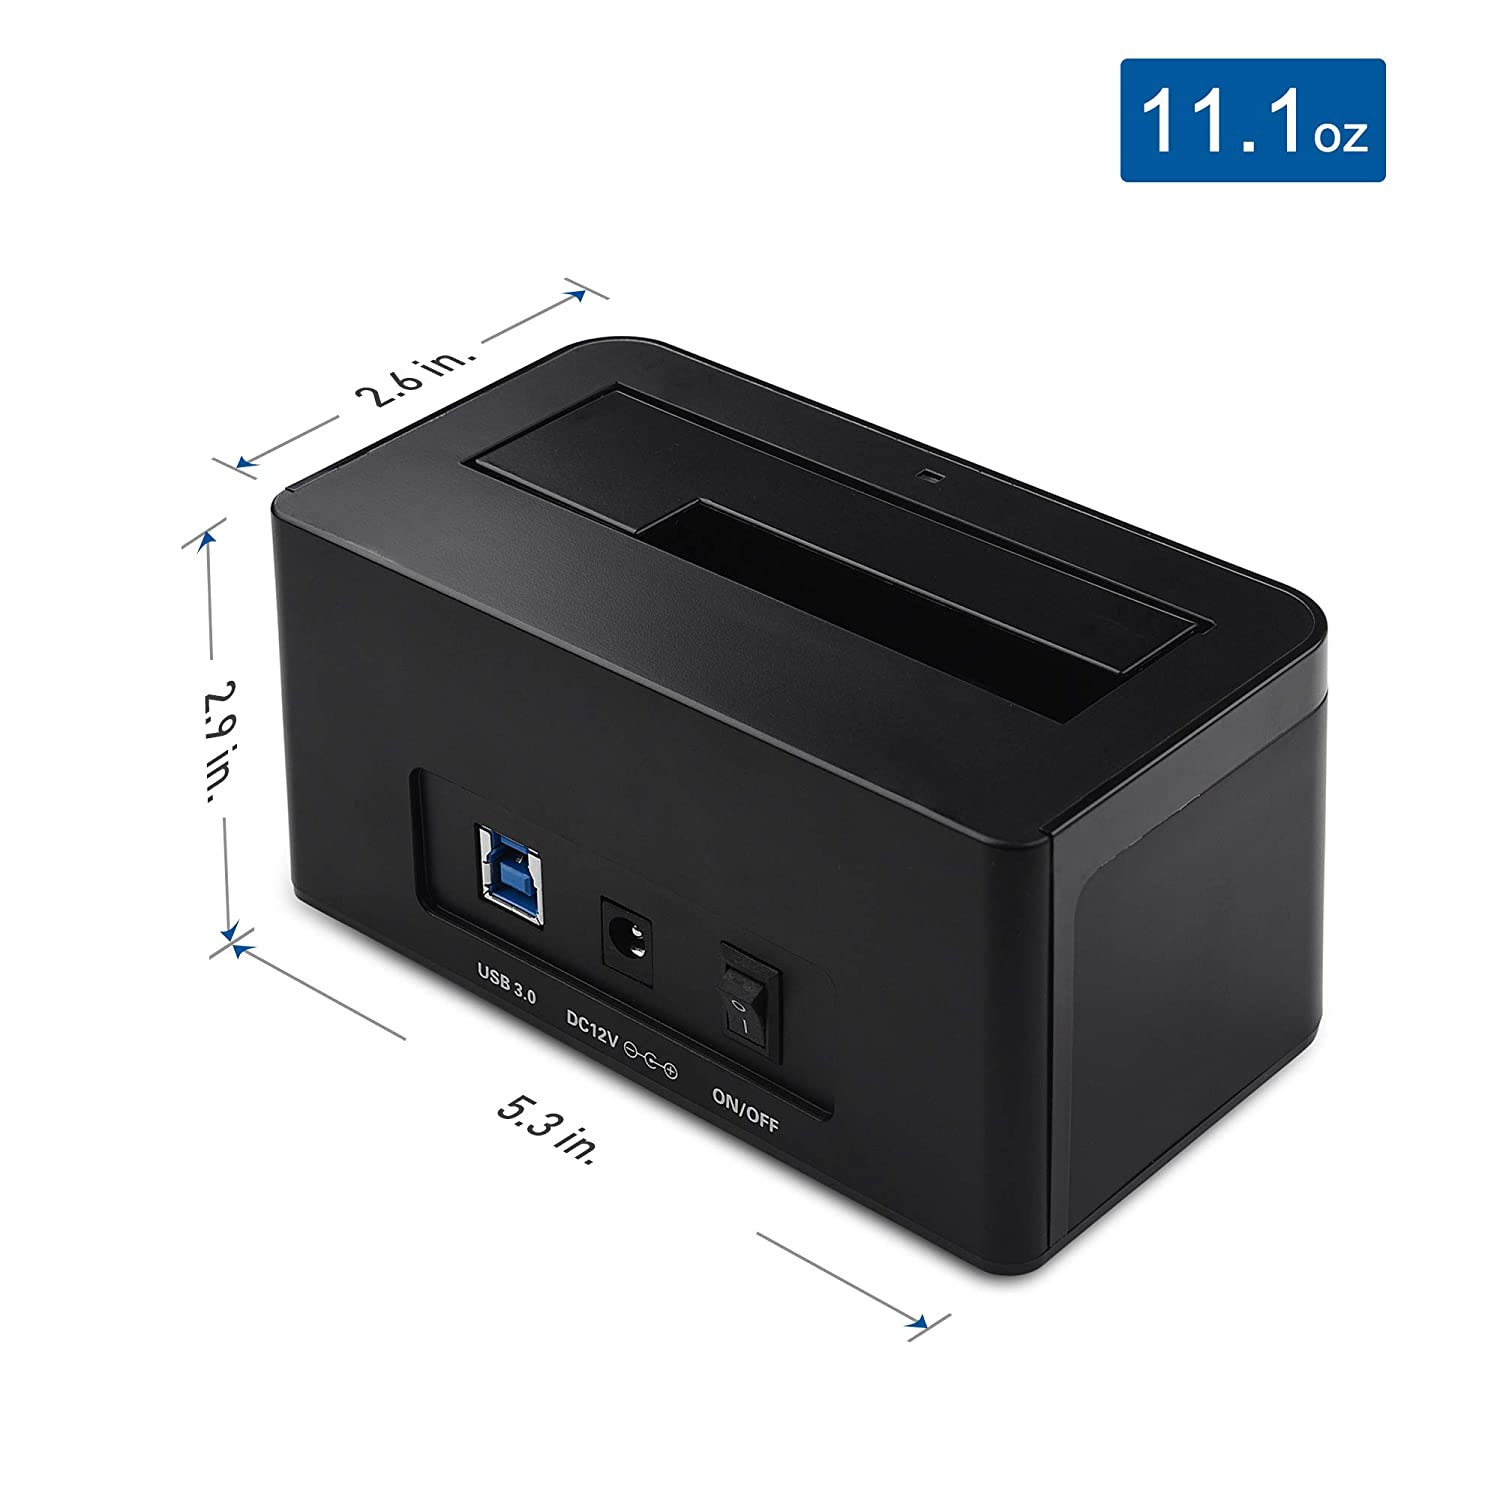 Amazon.com: Docking Station: Computers & Accessories